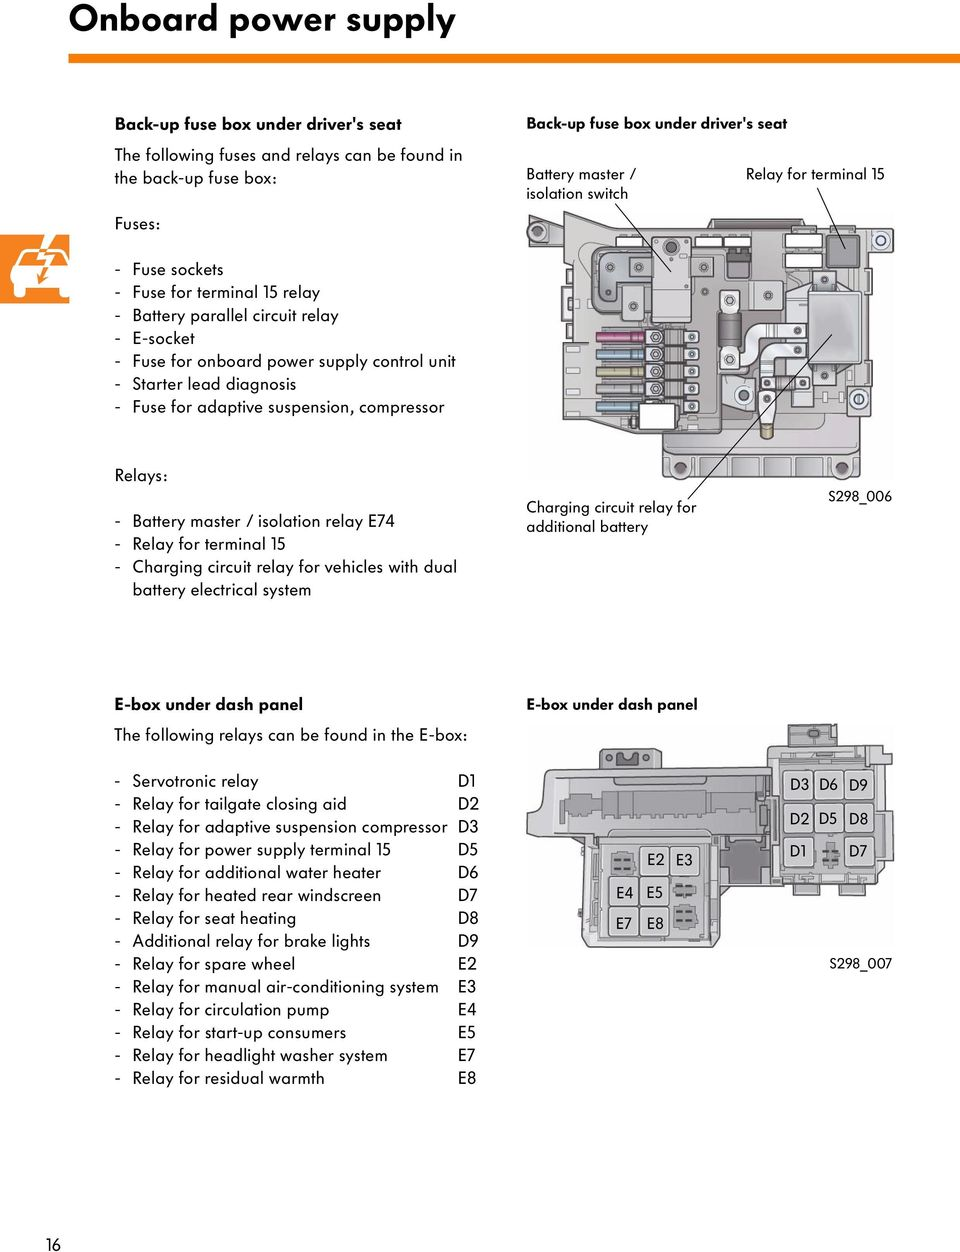 Wiring Diagram Omc 583653 - Daily Electronical Wiring Diagram on